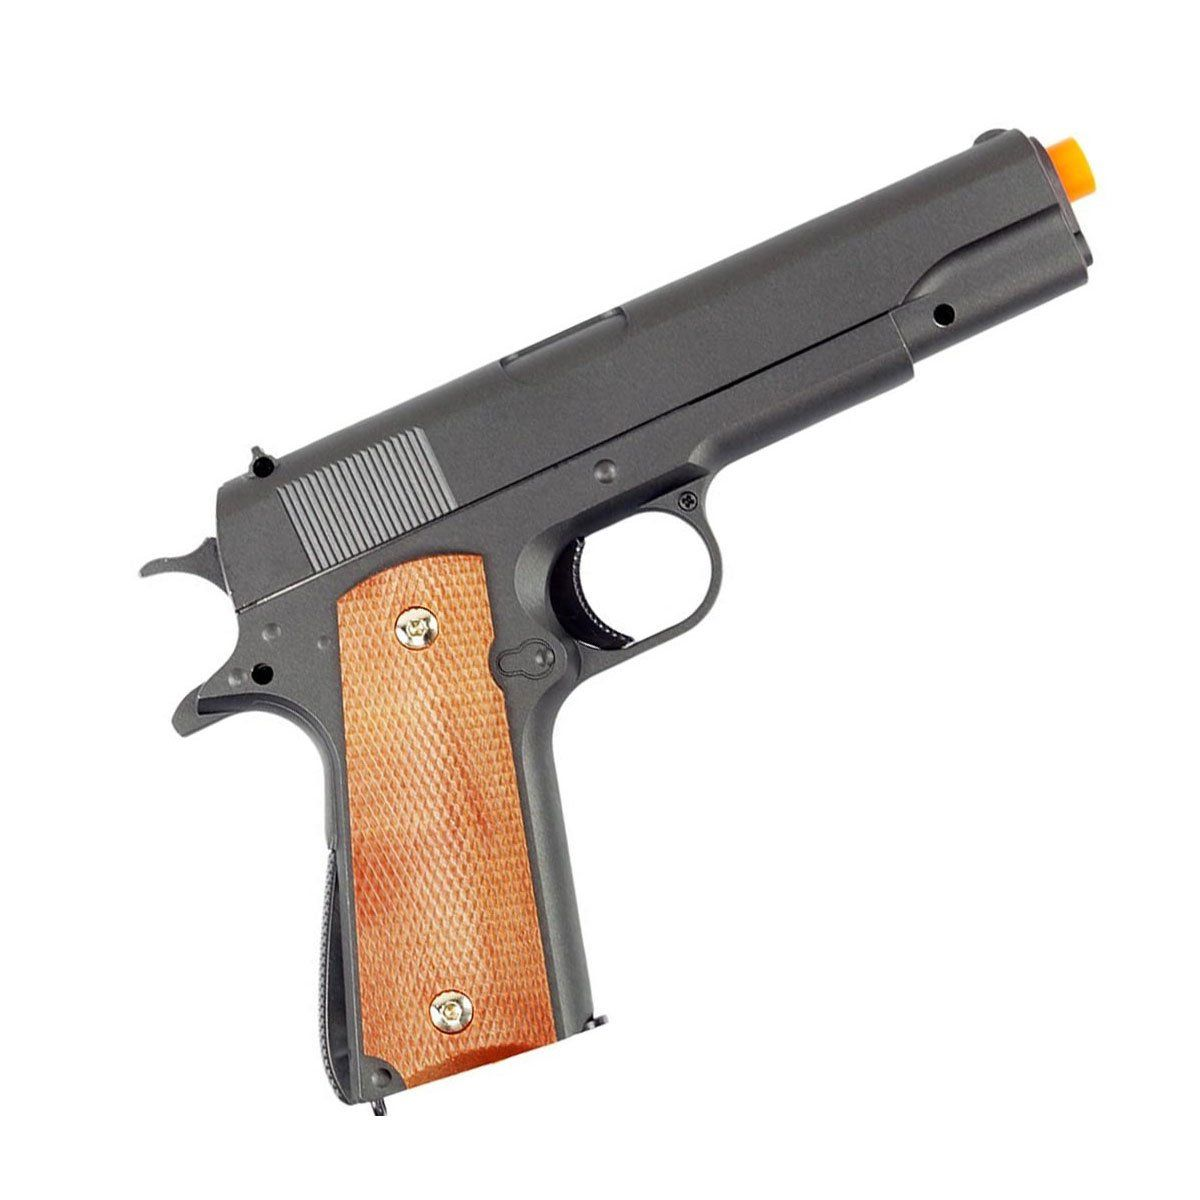 Pistola de airsoft G13 Colt 1911 full metal 6mm Galaxy